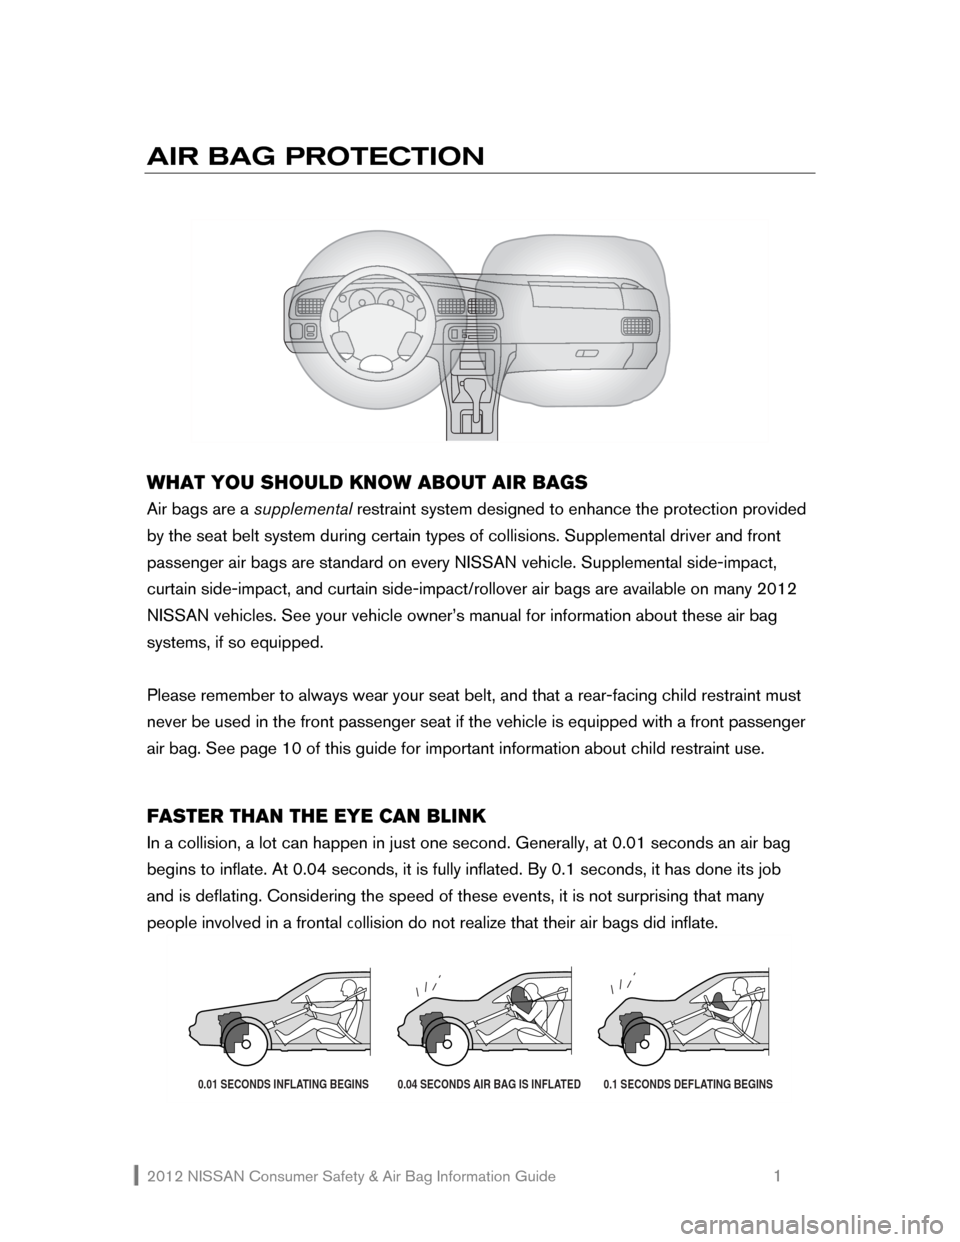 NISSAN ARMADA 2012 1.G Consumer Safety Air Bag Information Guide 2012 NISSAN Consumer Safety & Air Bag Information Guide                                                   1  AIR BAG PROTECTION           WHAT YOU SHOULD KNOW ABOUT AIR BAGS  Air bags are a supplement